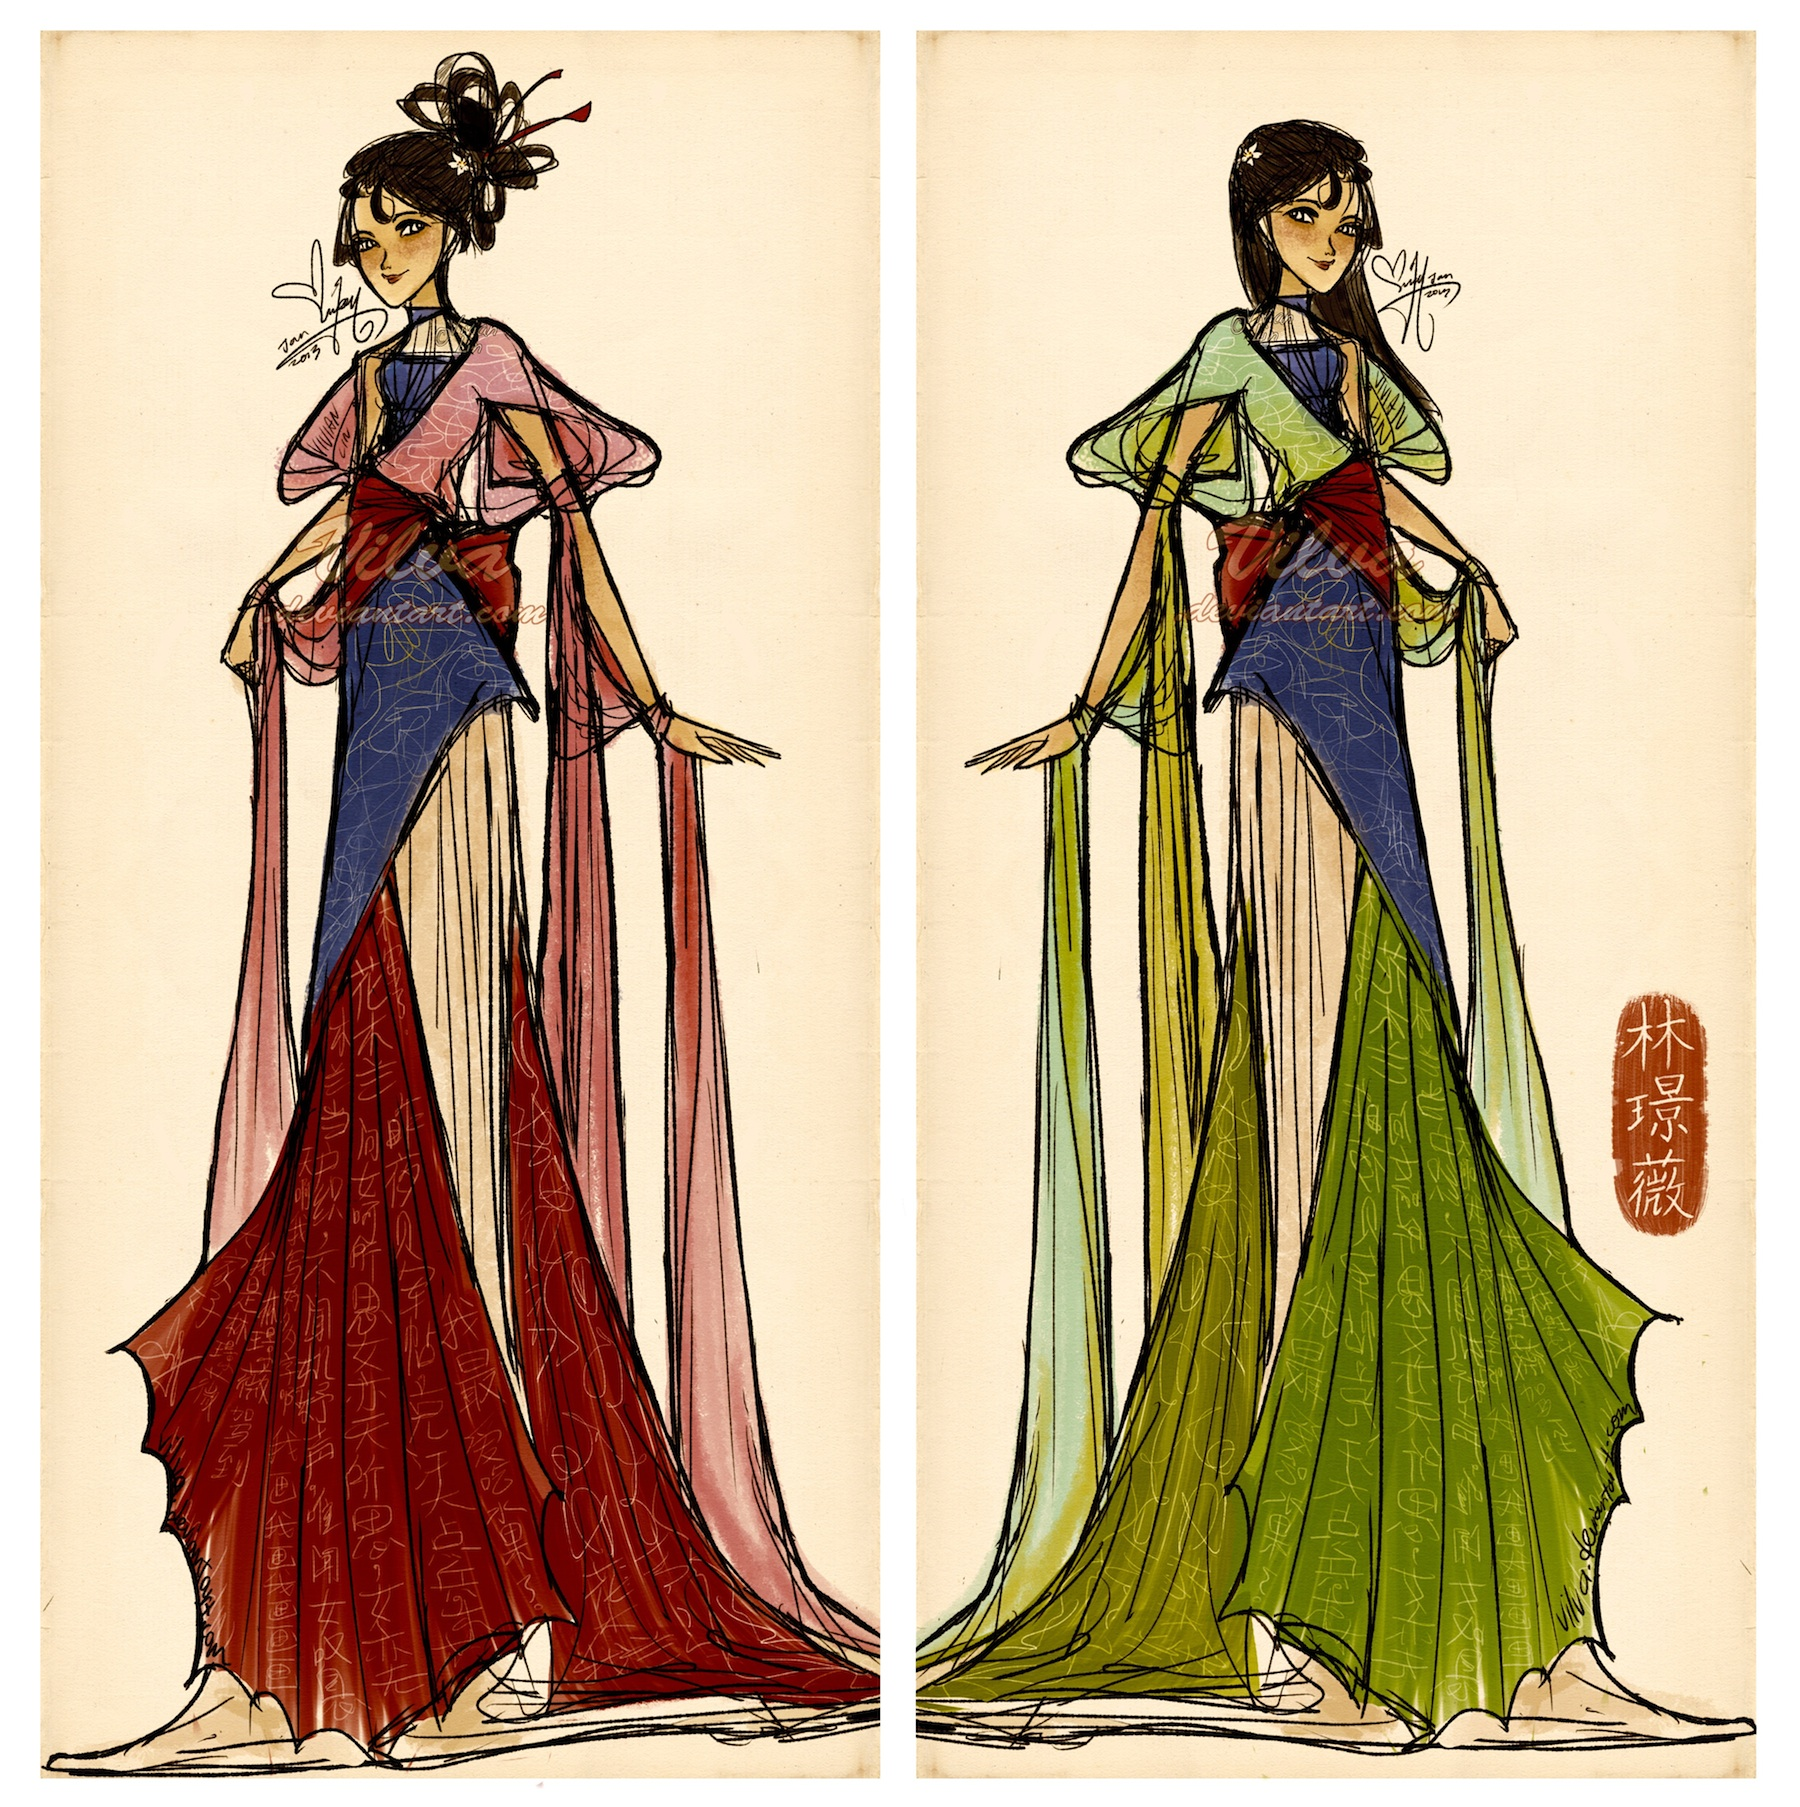 When will my reflection show? (Mulan dress design) by Vilva